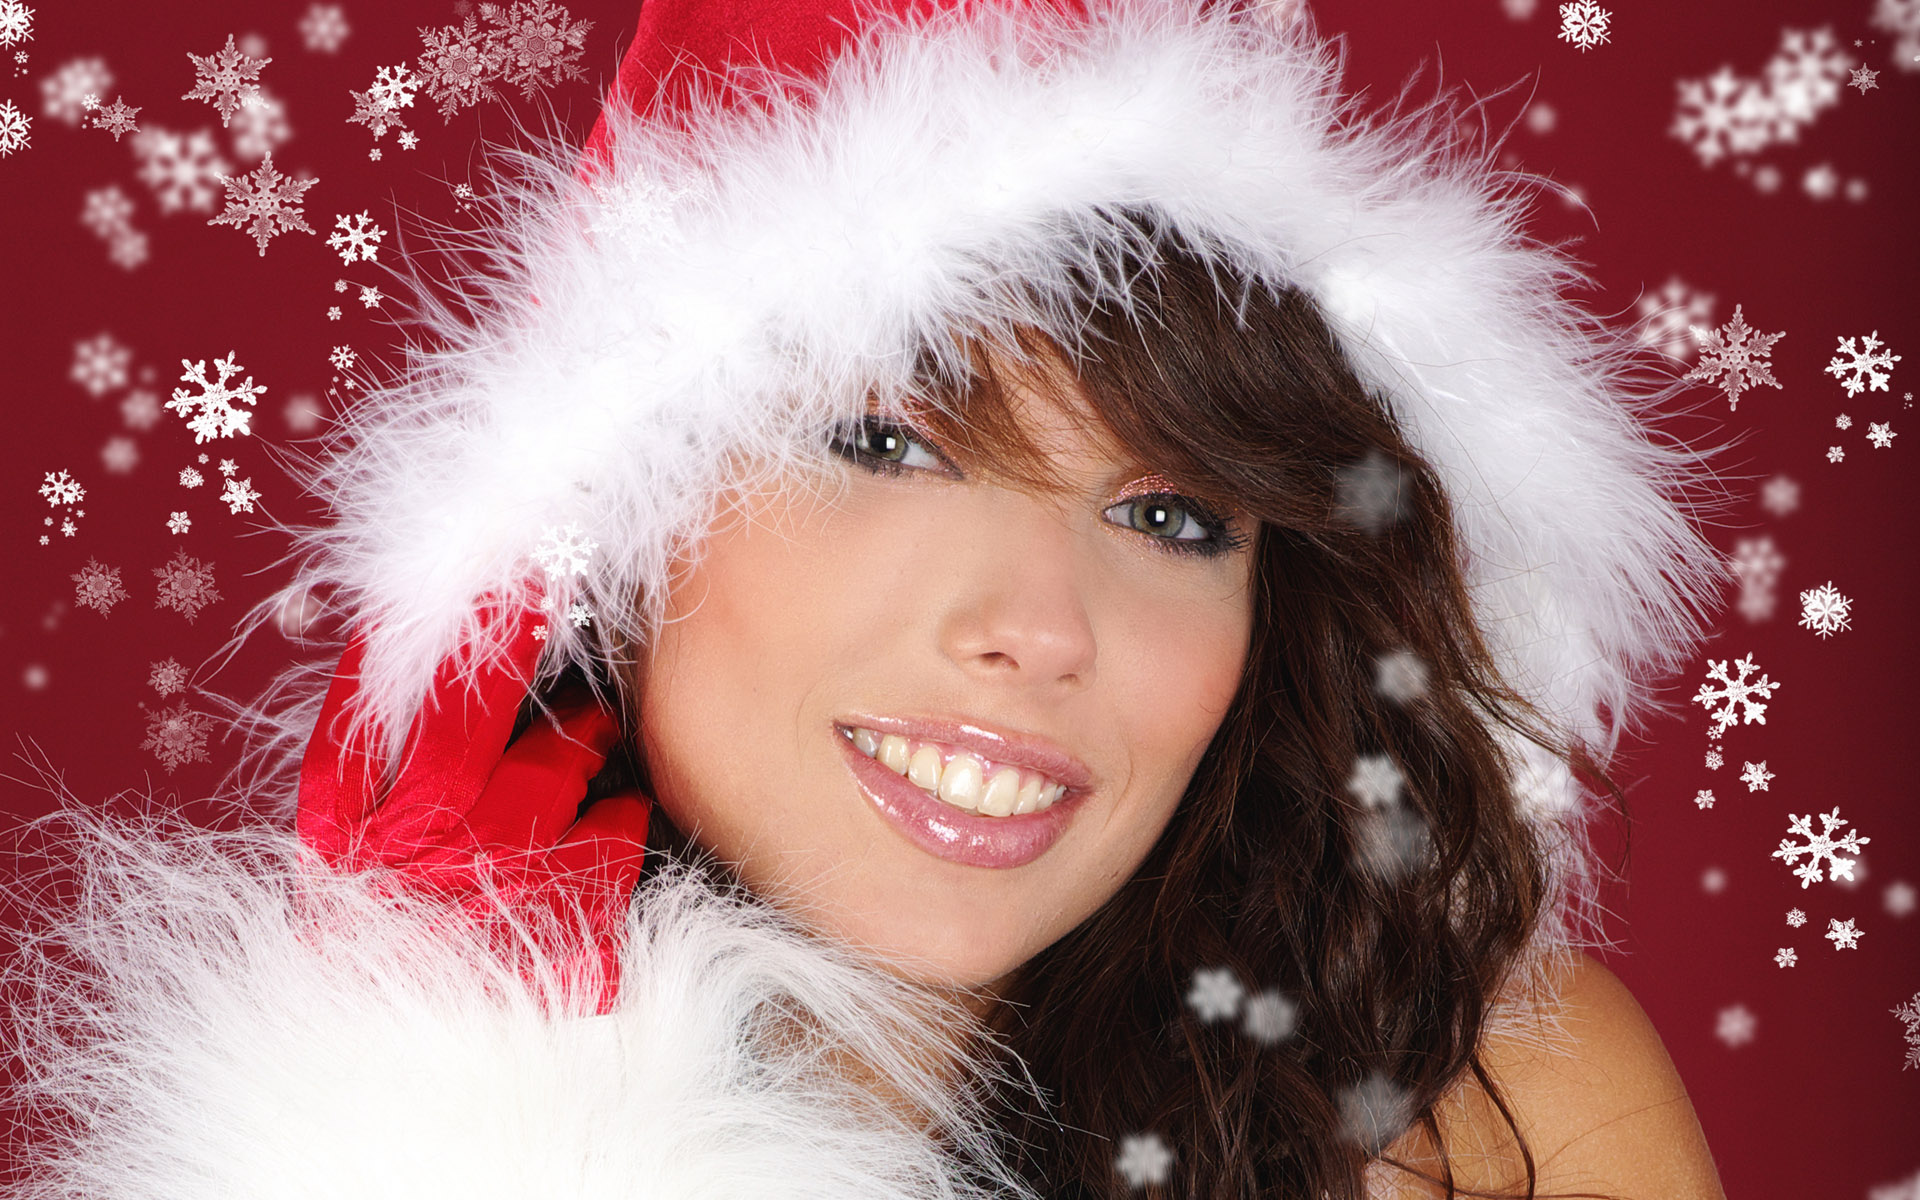 High-definition Christmas girl 26647